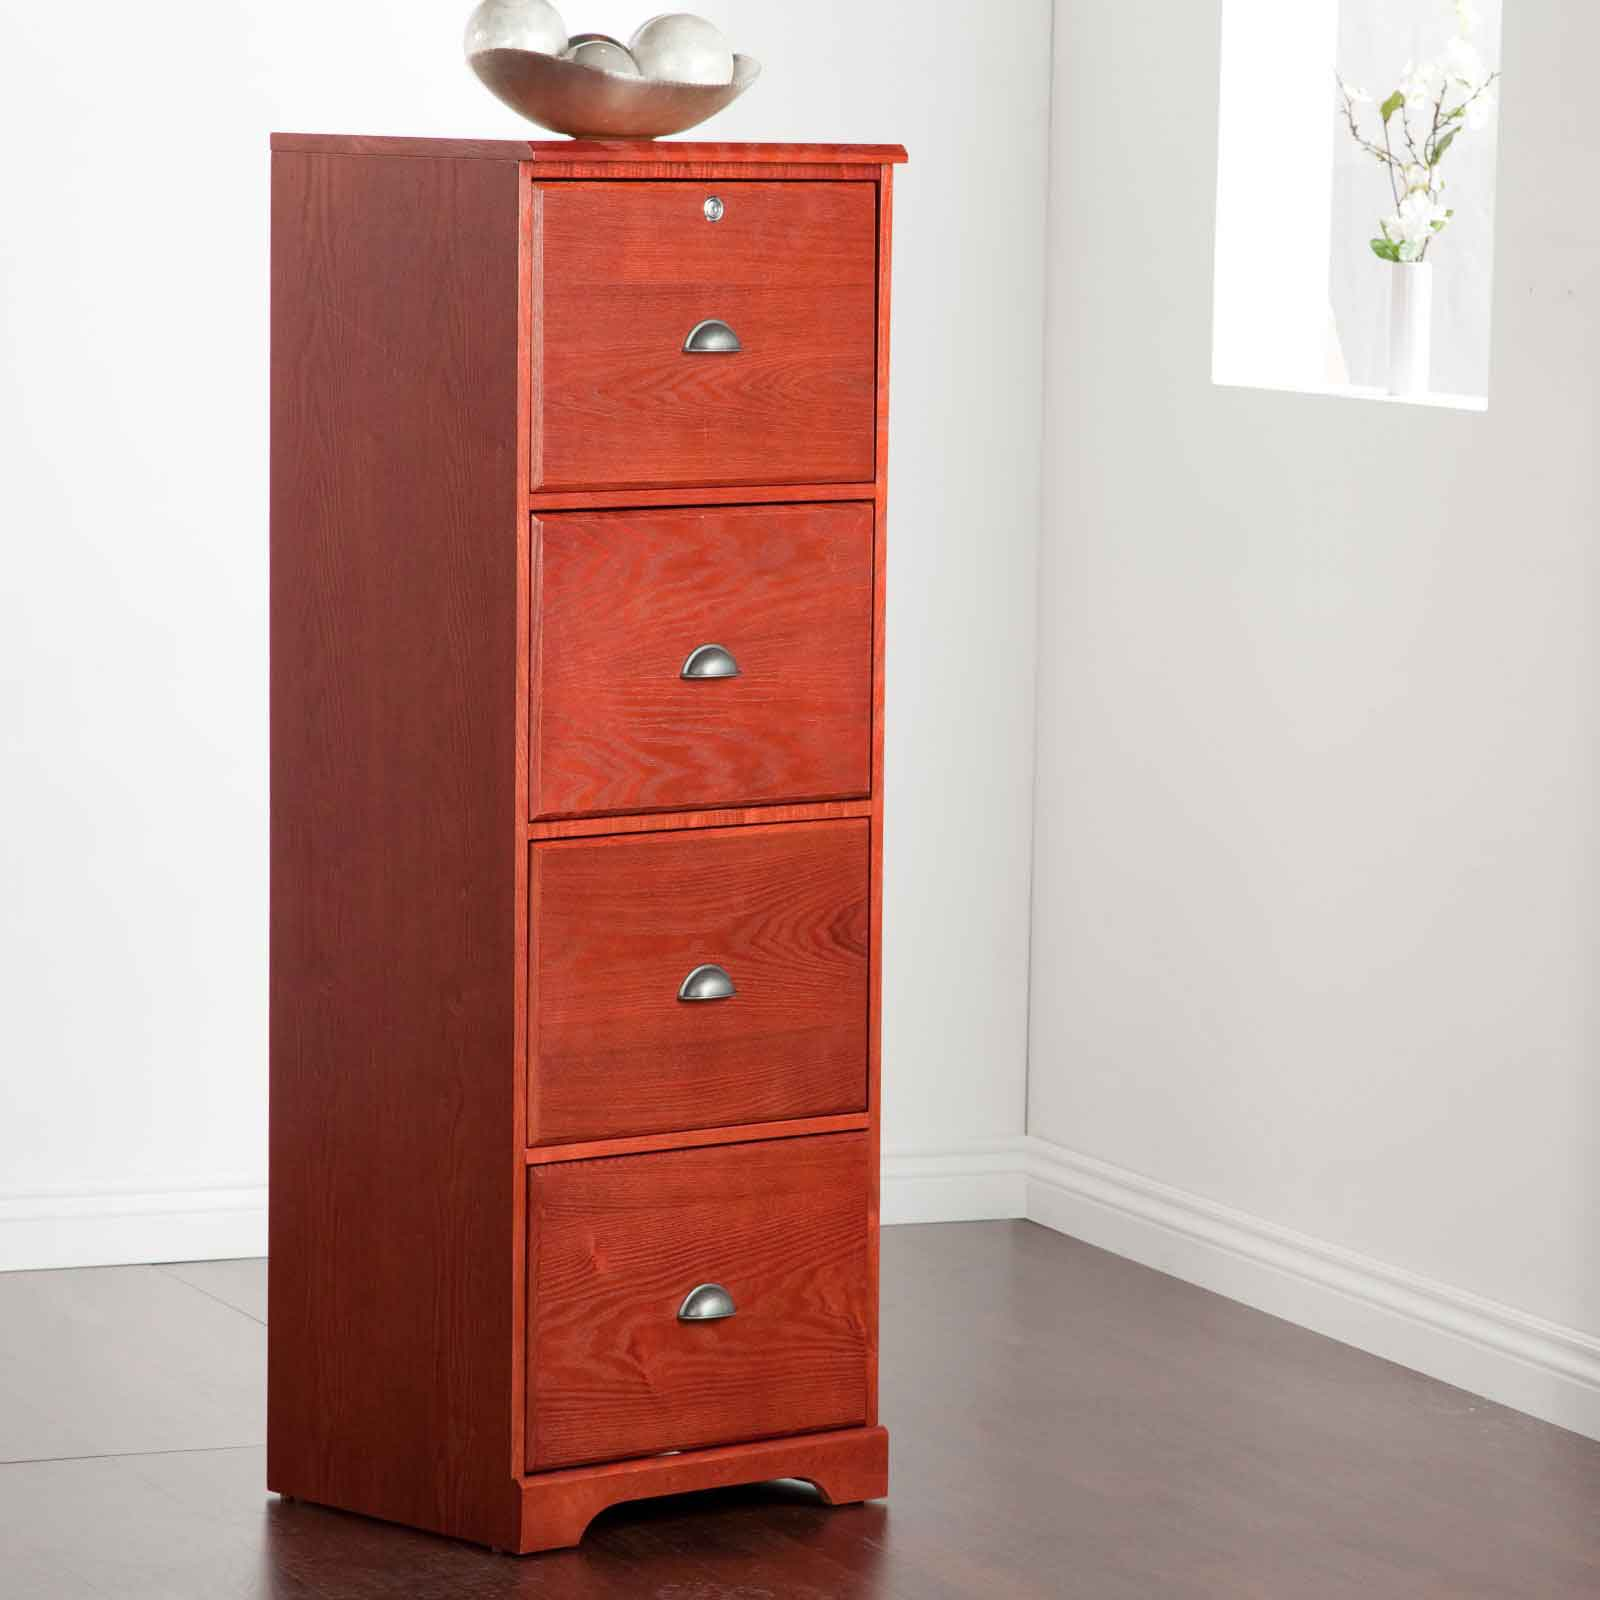 Colorful File Cabinets Decorative Filing Cabinets For Both Style And Function